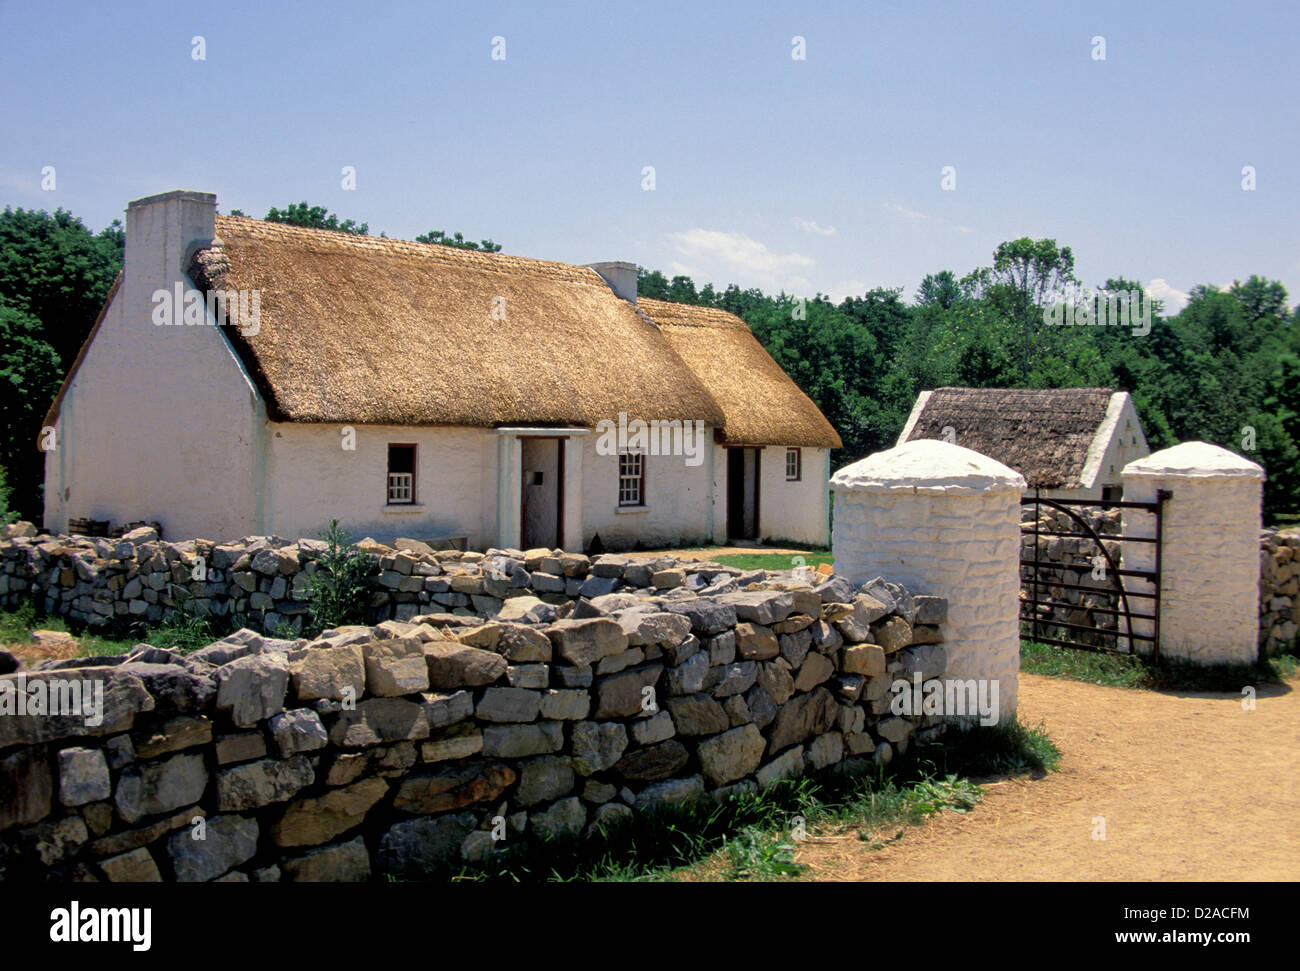 Virginia, Staunton. Ulster Home Frontier Museum (Thatched Roof) - Stock Image